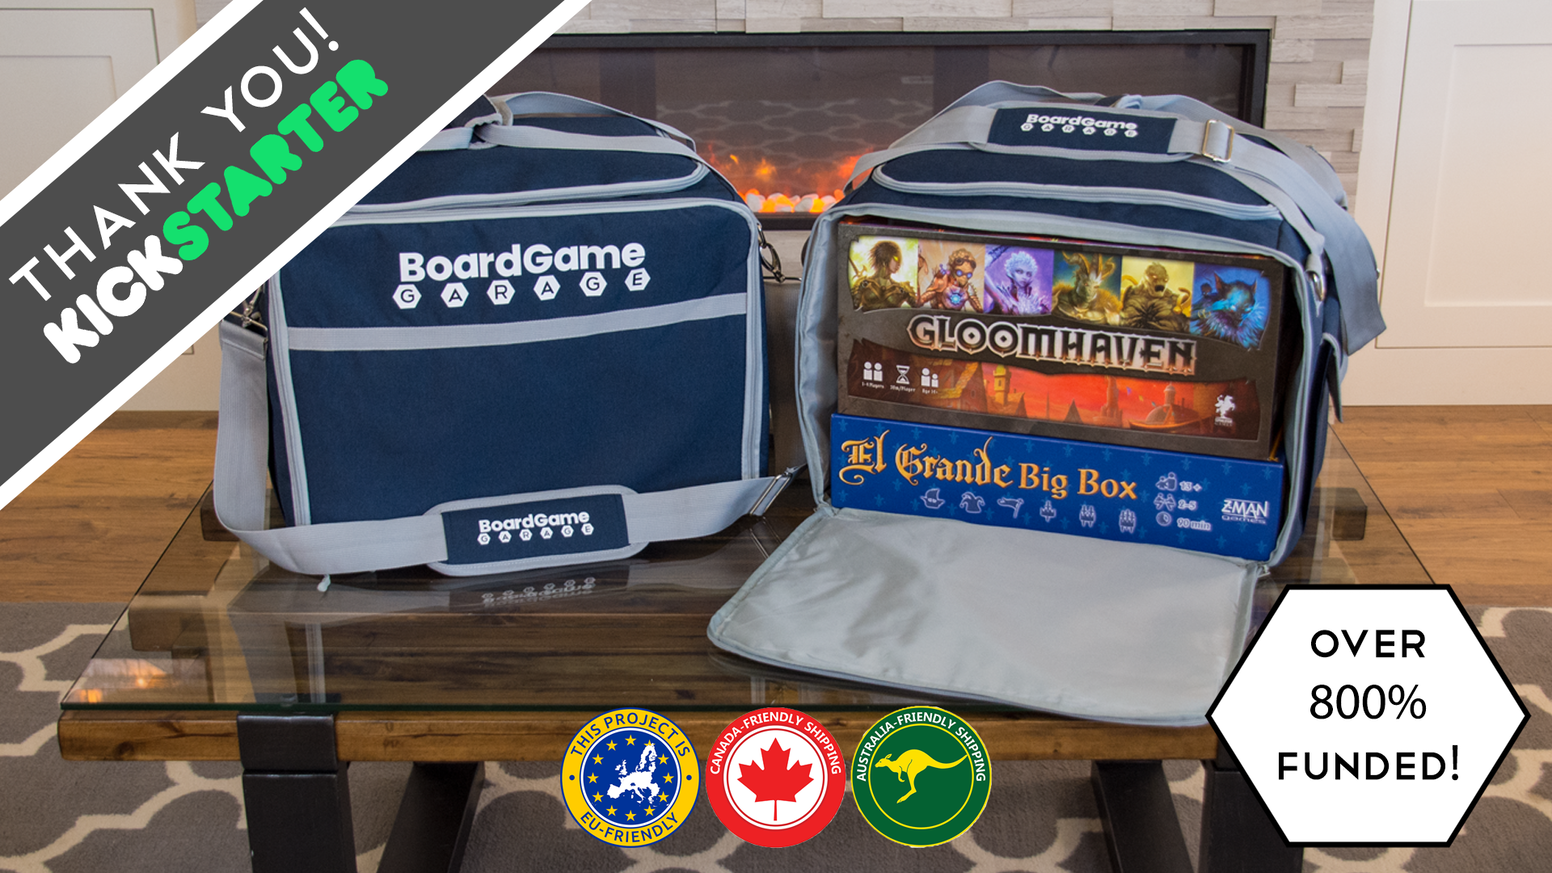 An all-in-one solution for carrying your favorite games and accessories of all sizes. Game night made easier!